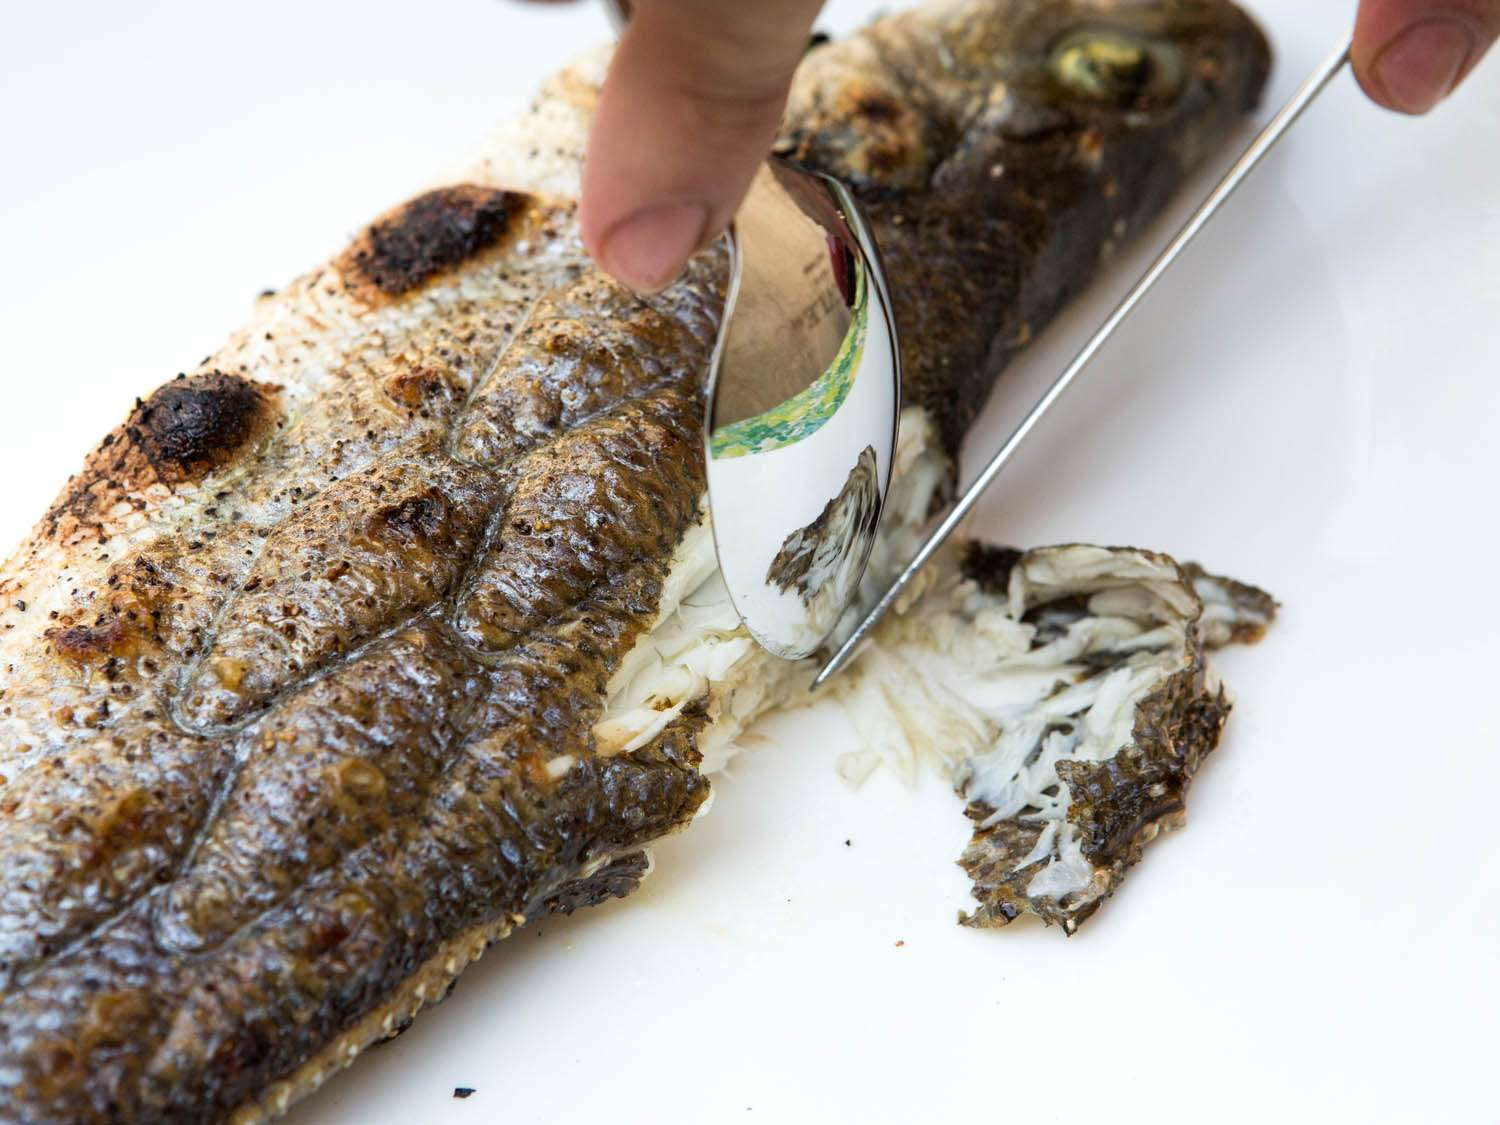 20140708-how-to-serve-whole-fish-vicky-wasik-2.jpg